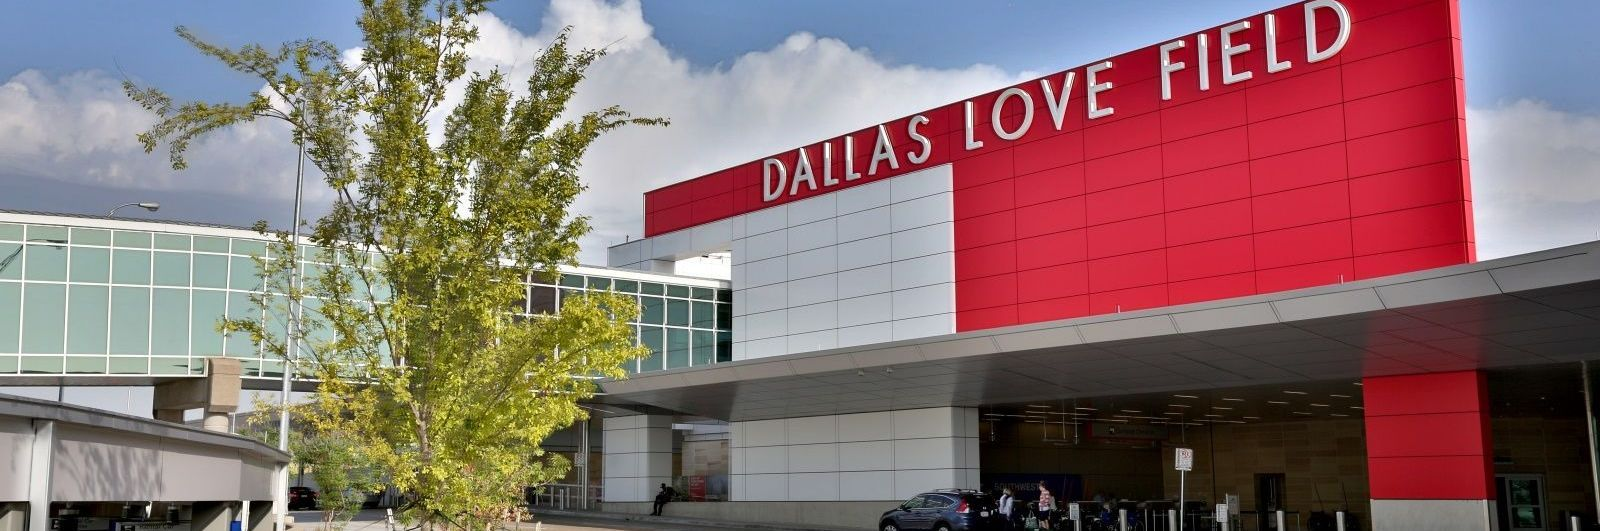 Hotels Near Dallas Love Field Airport